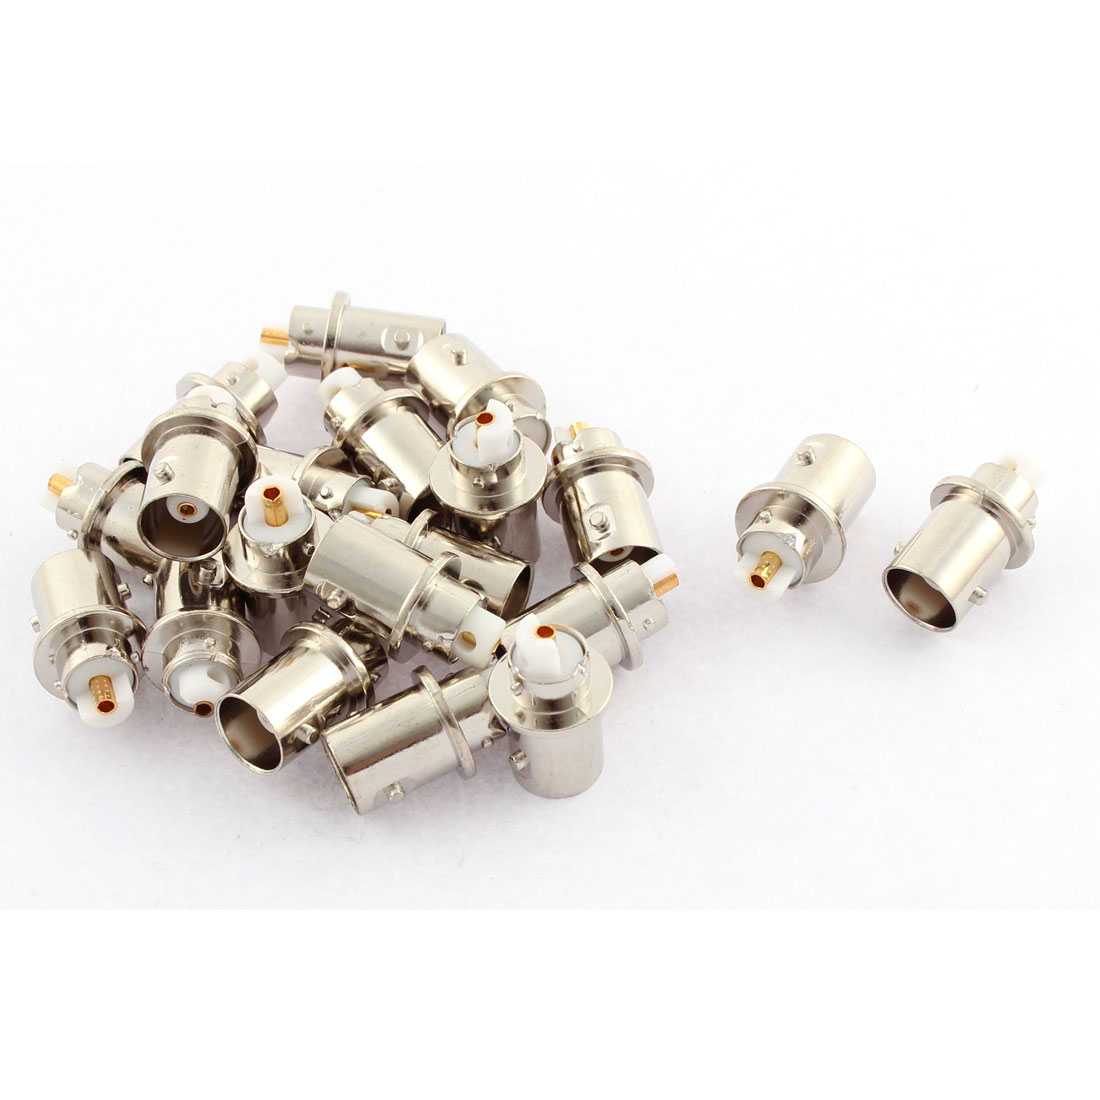 20 Pcs BNC Female Jack to Female Jack Adapter Connector Converter